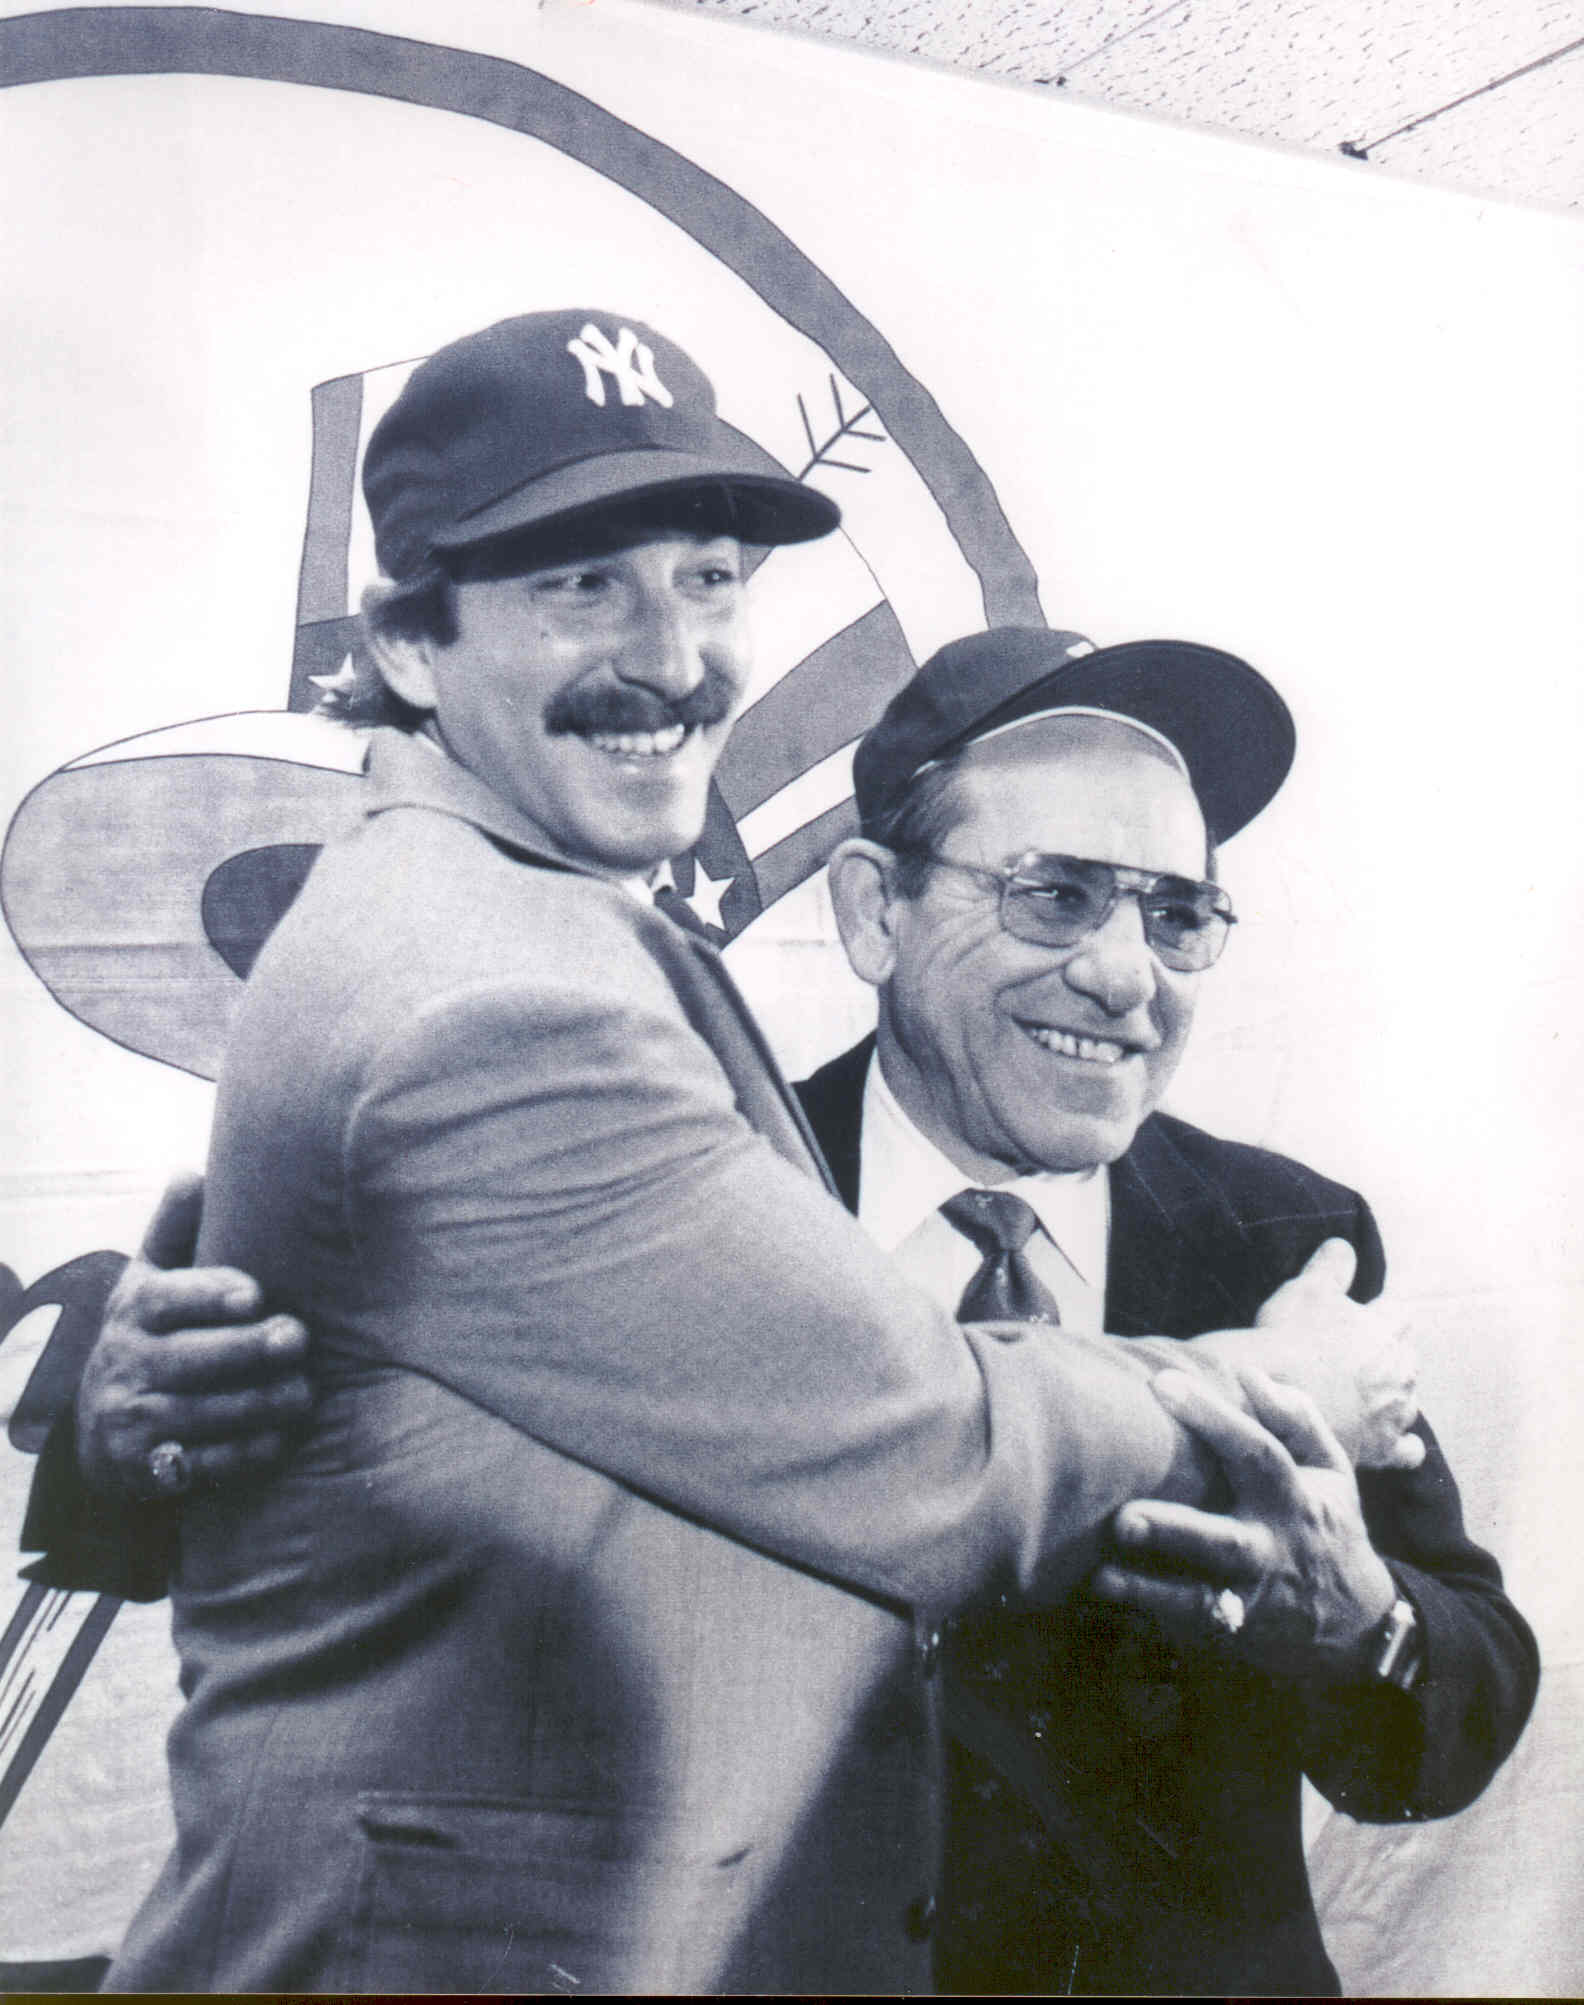 Yogi and Dale Berra hugging and posing for pictures